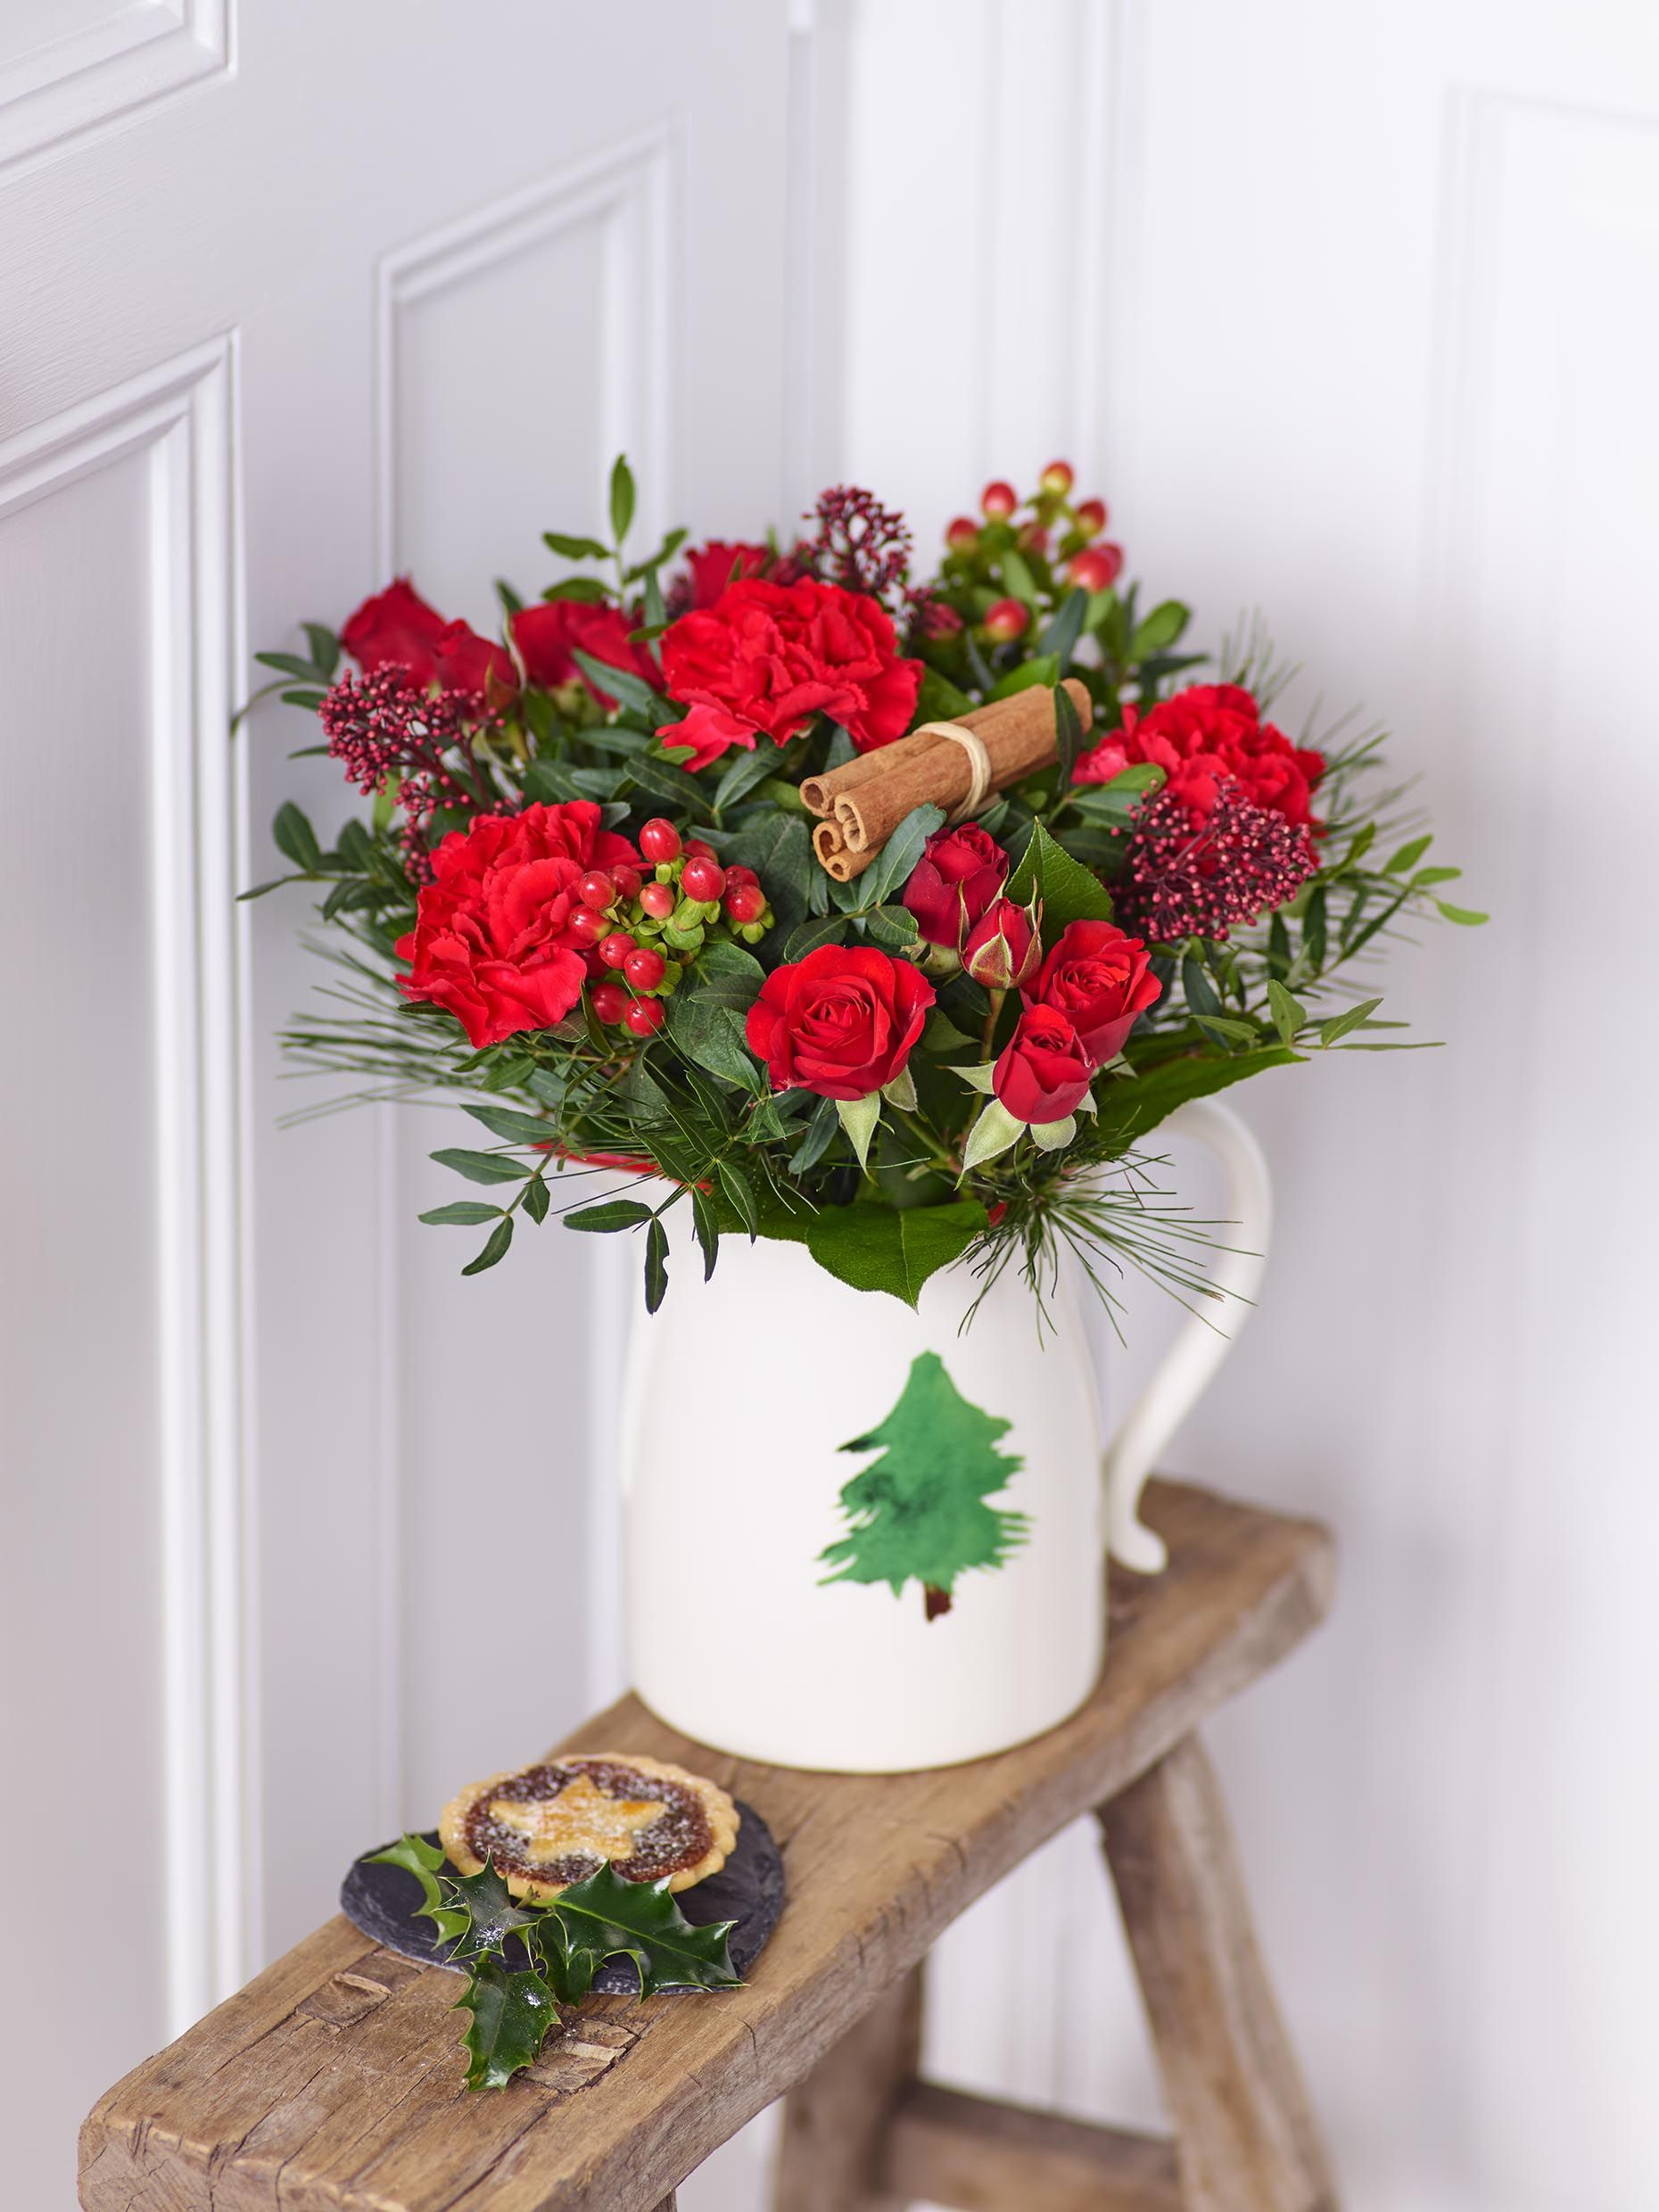 Pin by Interflora on Christmas at Home (With images